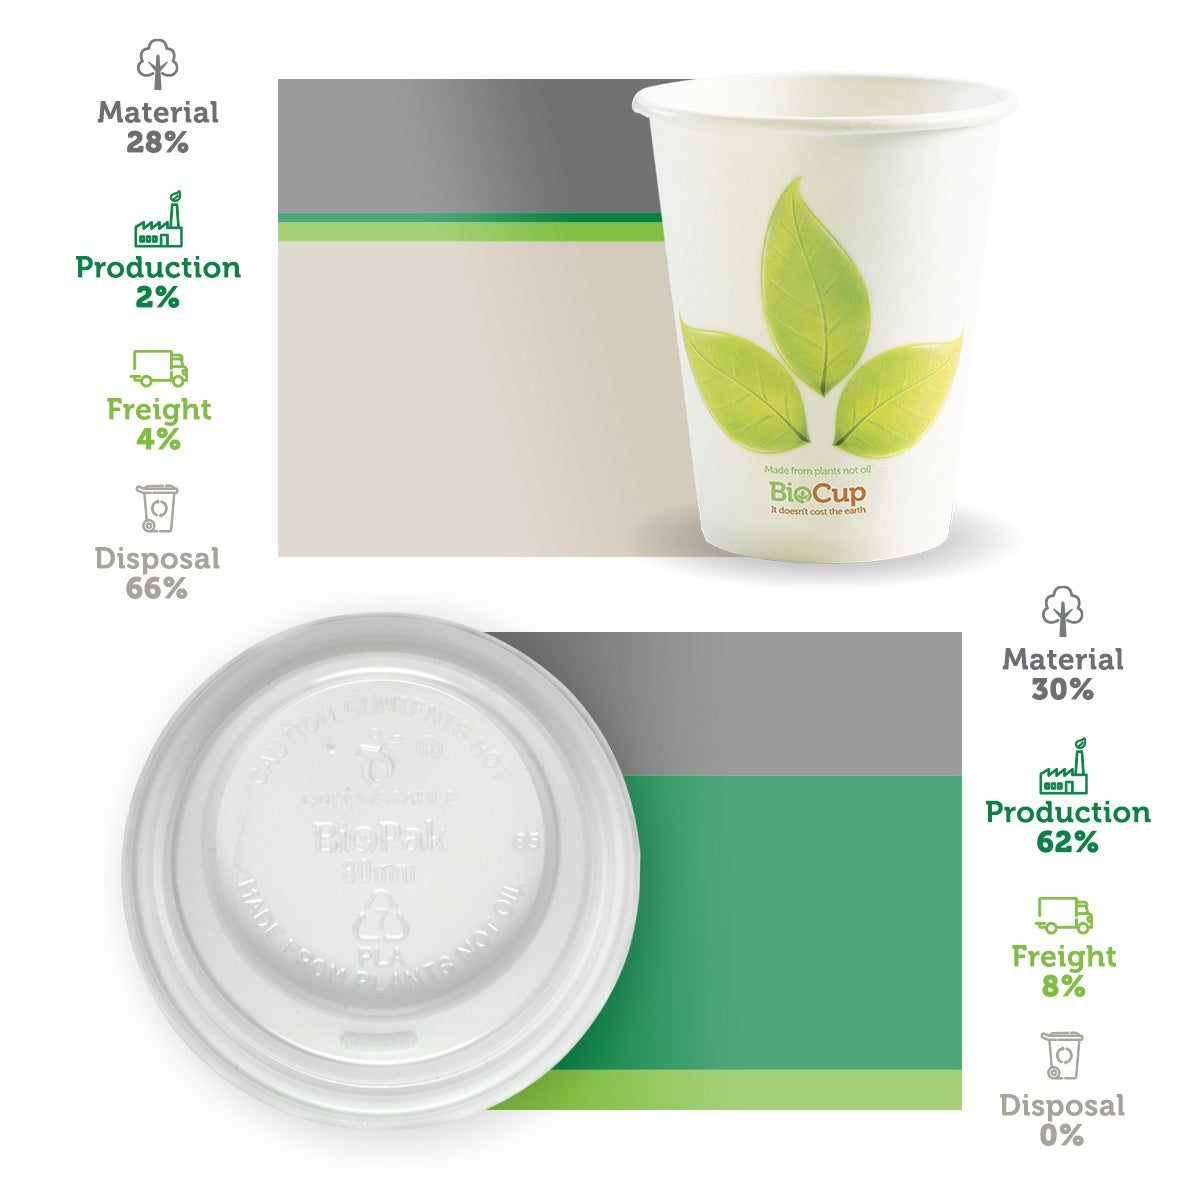 carbon emissions of a biocup